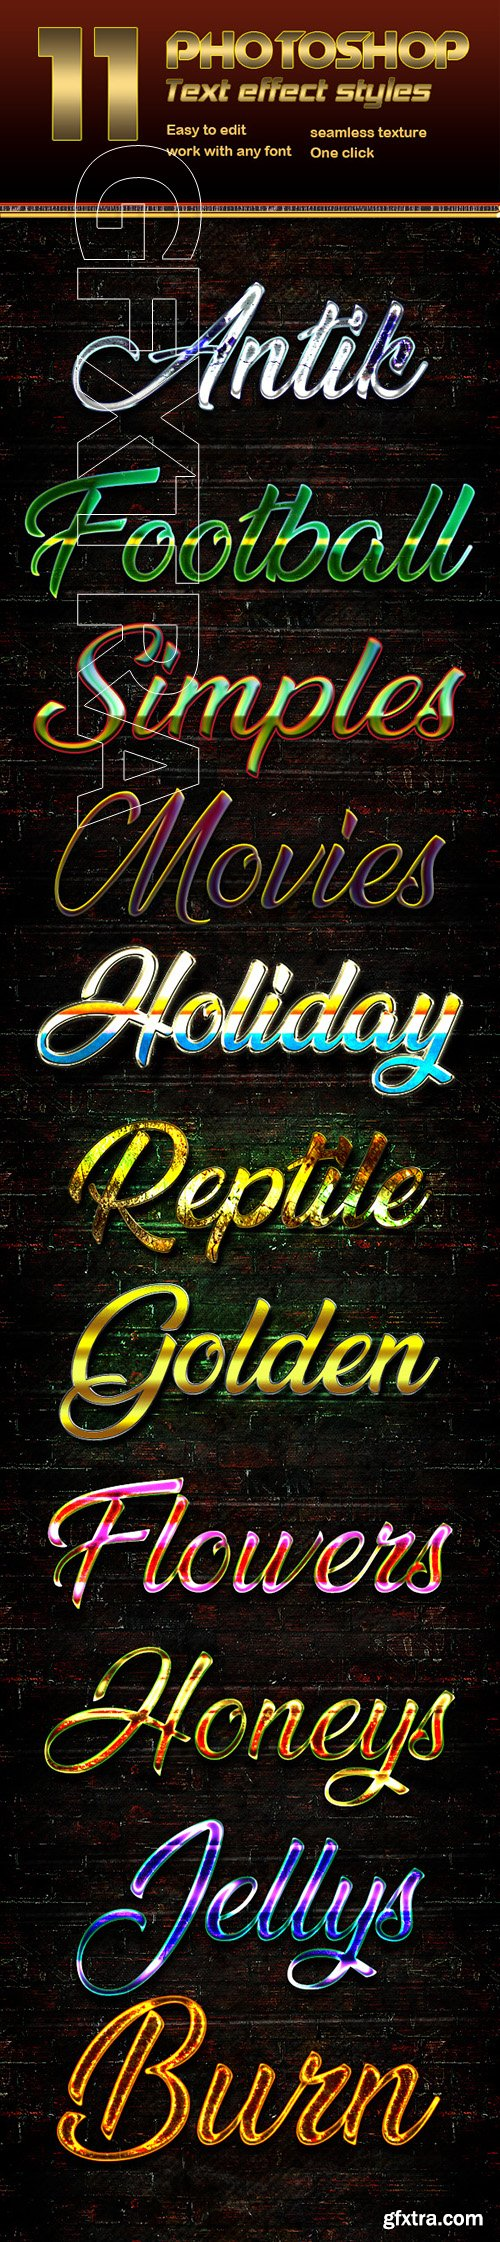 GraphicRiver - 11 Photoshop Text Effect Styles Vol 2 22685735